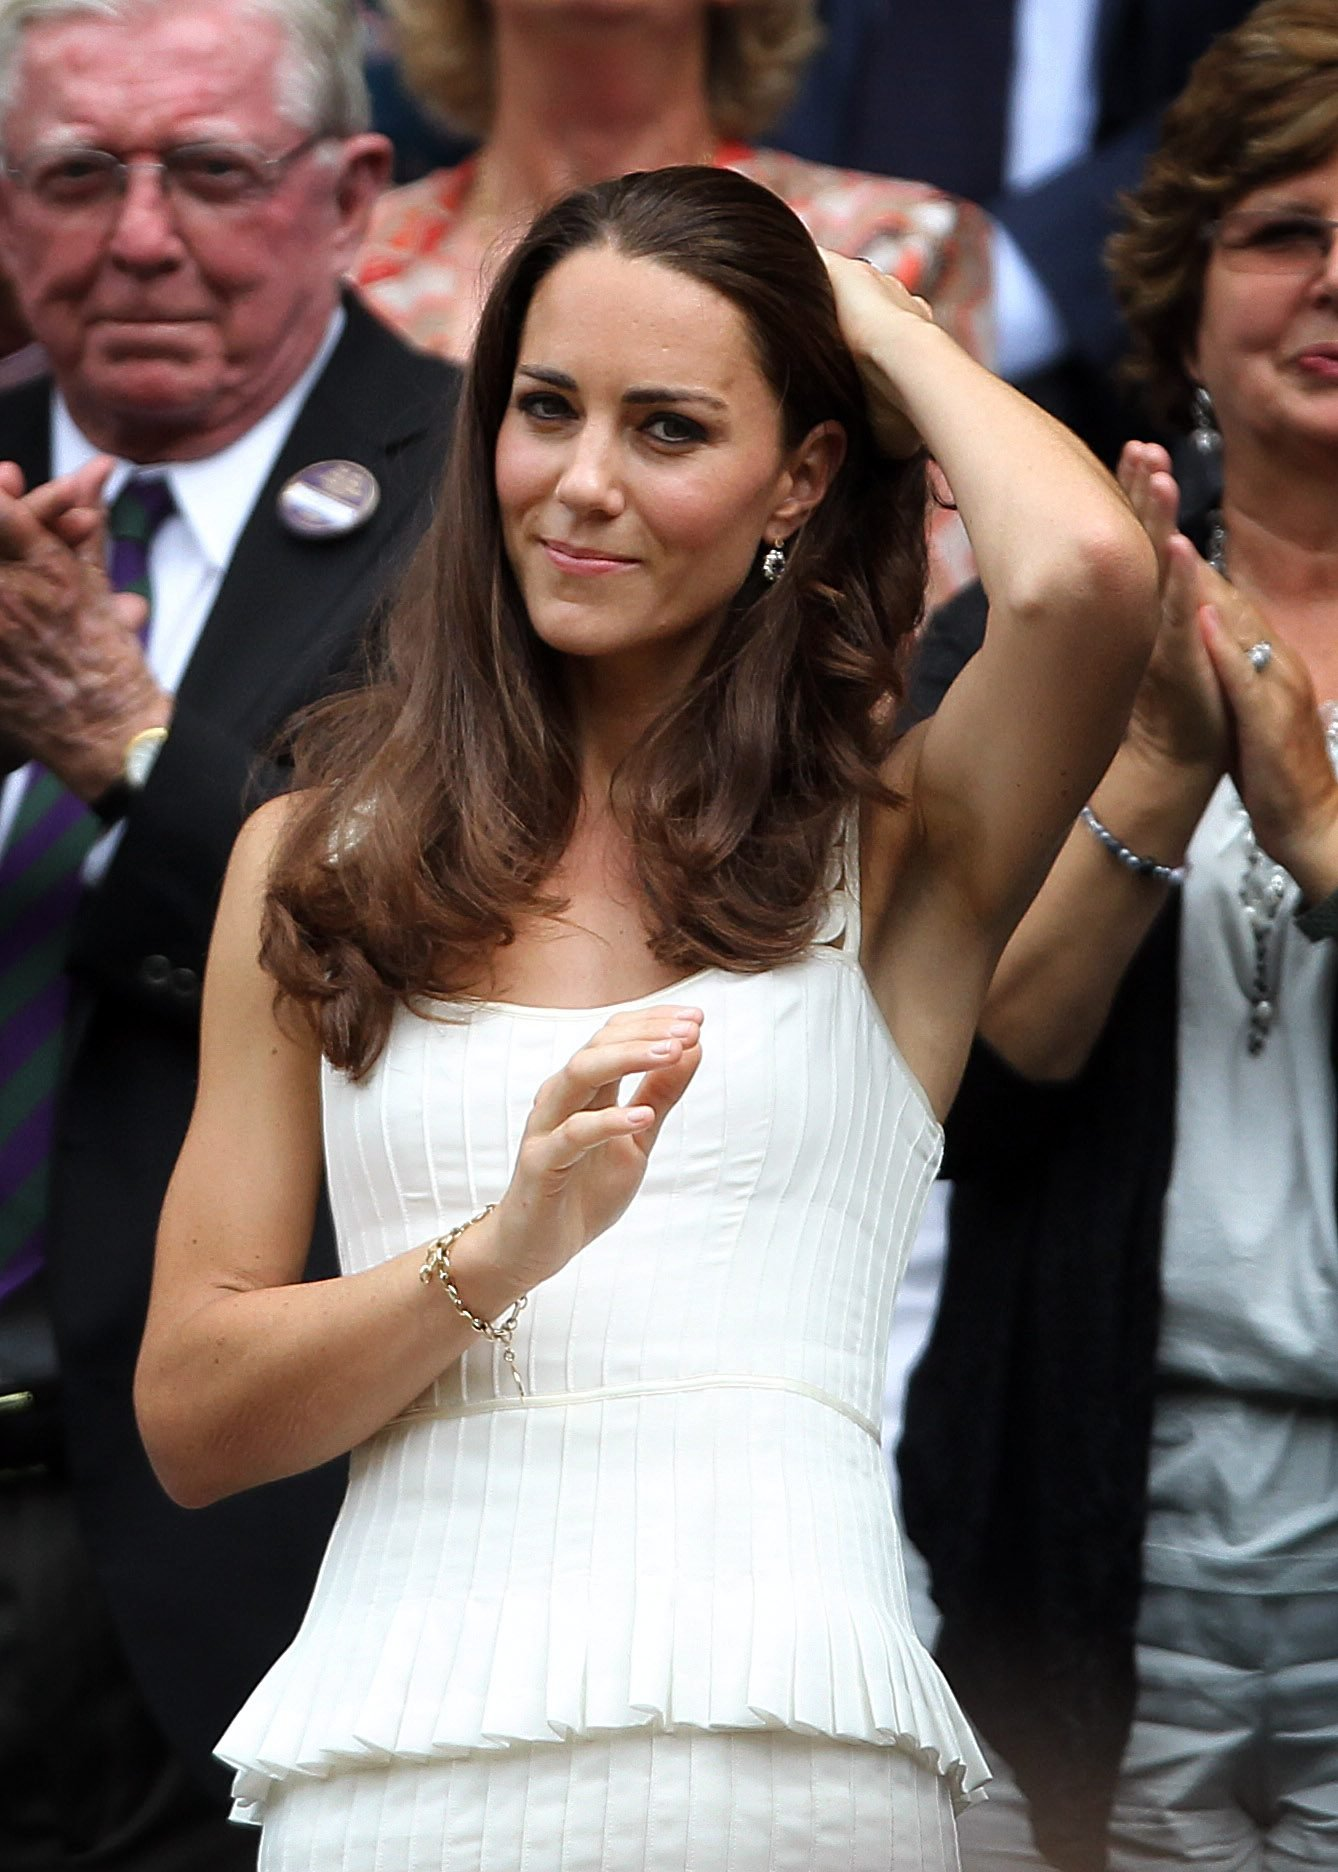 Mandatory Credit: Photo by Ian MacNicol/Shutterstock (7442708b) Tennis - Wimbledon Championships - Day 7 Kate Middleton visits centre court to watch Andy Murray play Richard Gasquet during the seventh day of the Wimbledon Championships UK London Kate Middleton